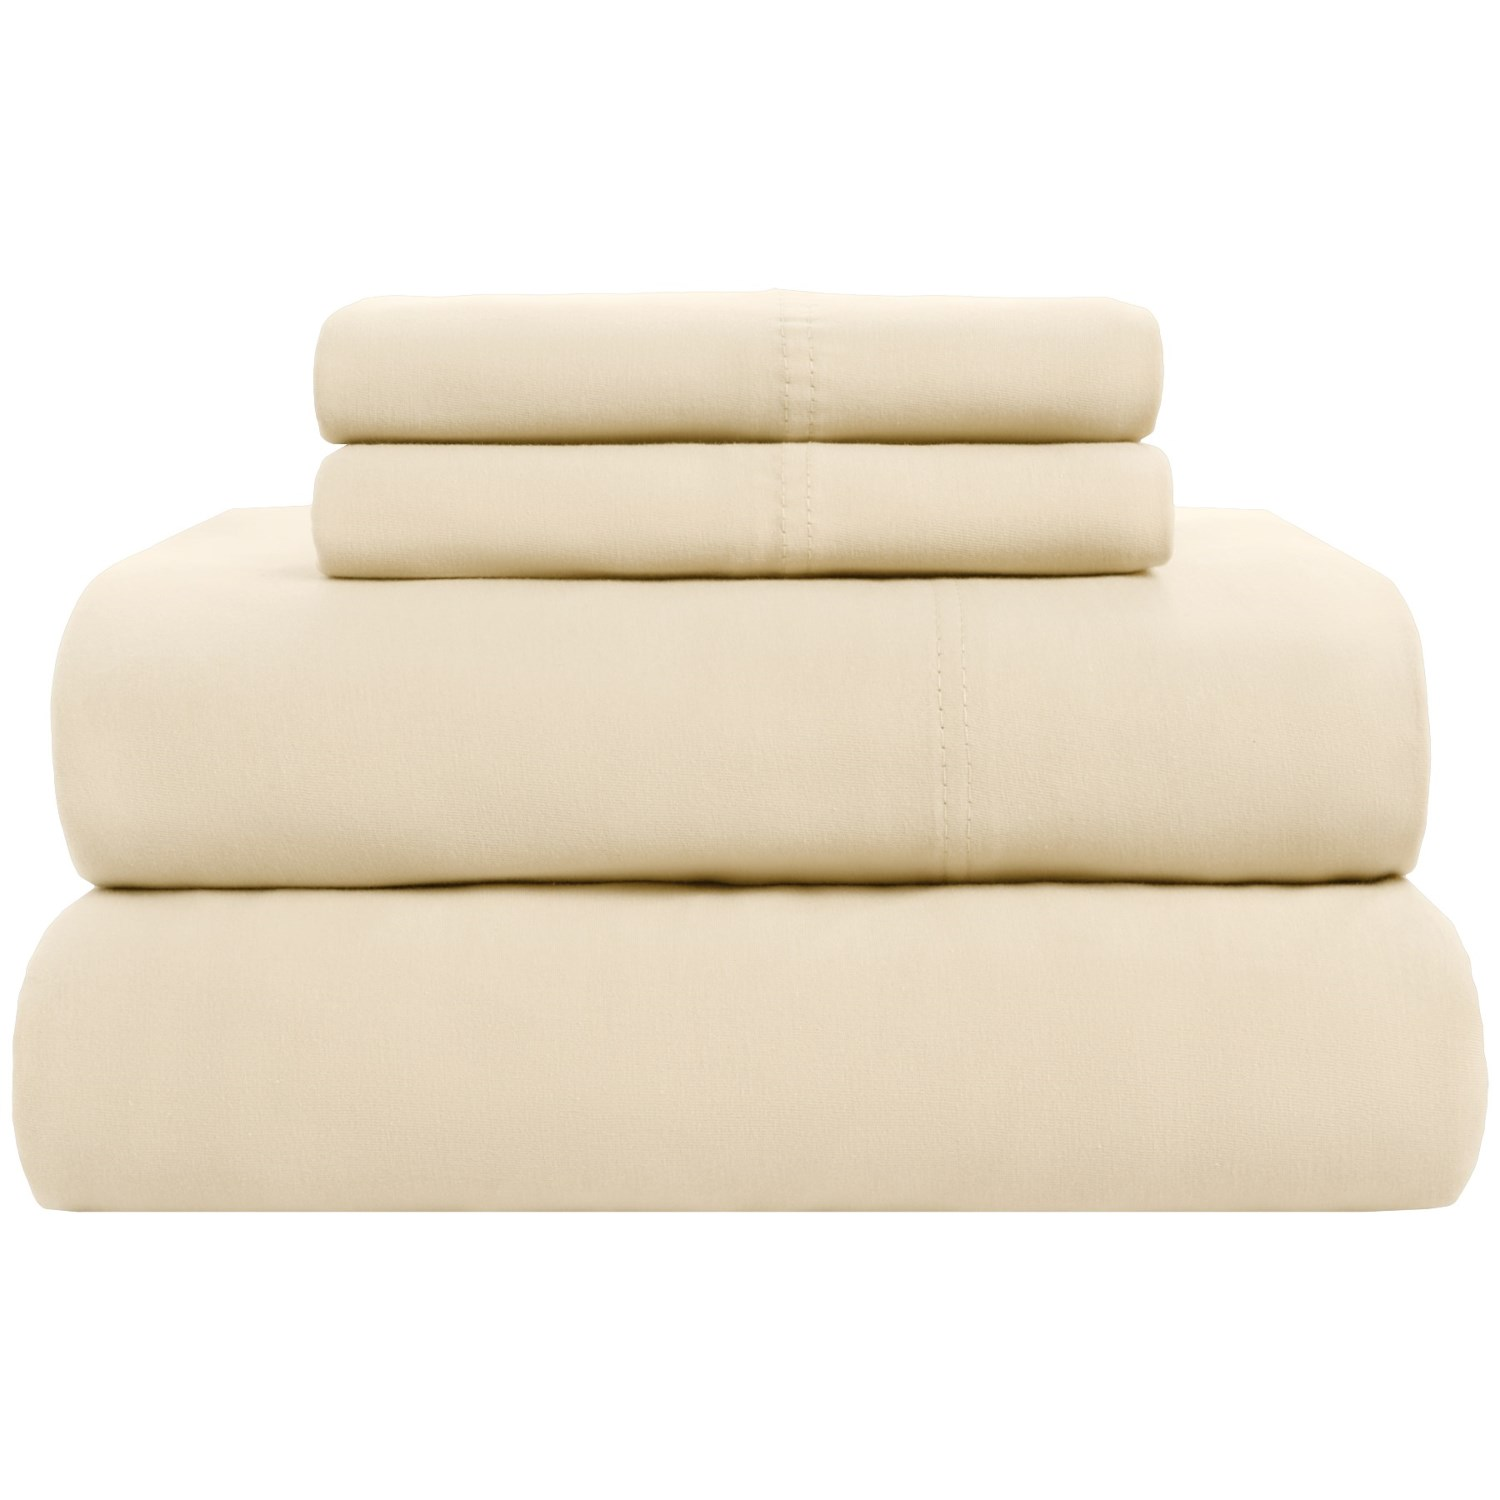 Hanes Jersey Queen Sheets Knit